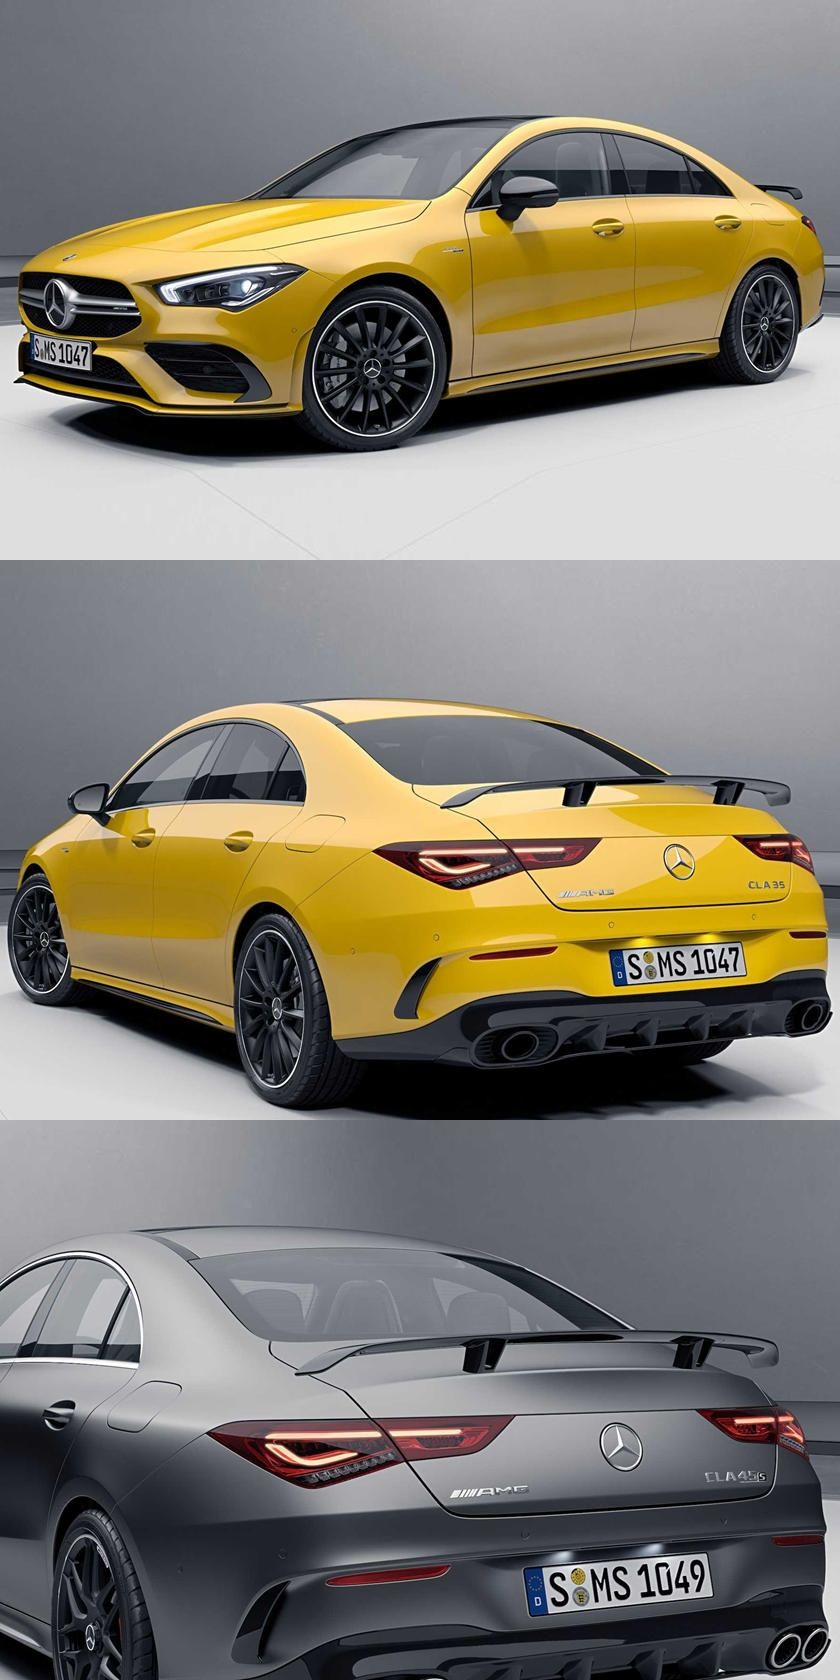 Mercedes Amg Cla35 And Cla45 Get New Upgrades Aero Packs Are The Amg Way Even On The Small Sedan In 2020 Mercedes Mercedes Amg Amg